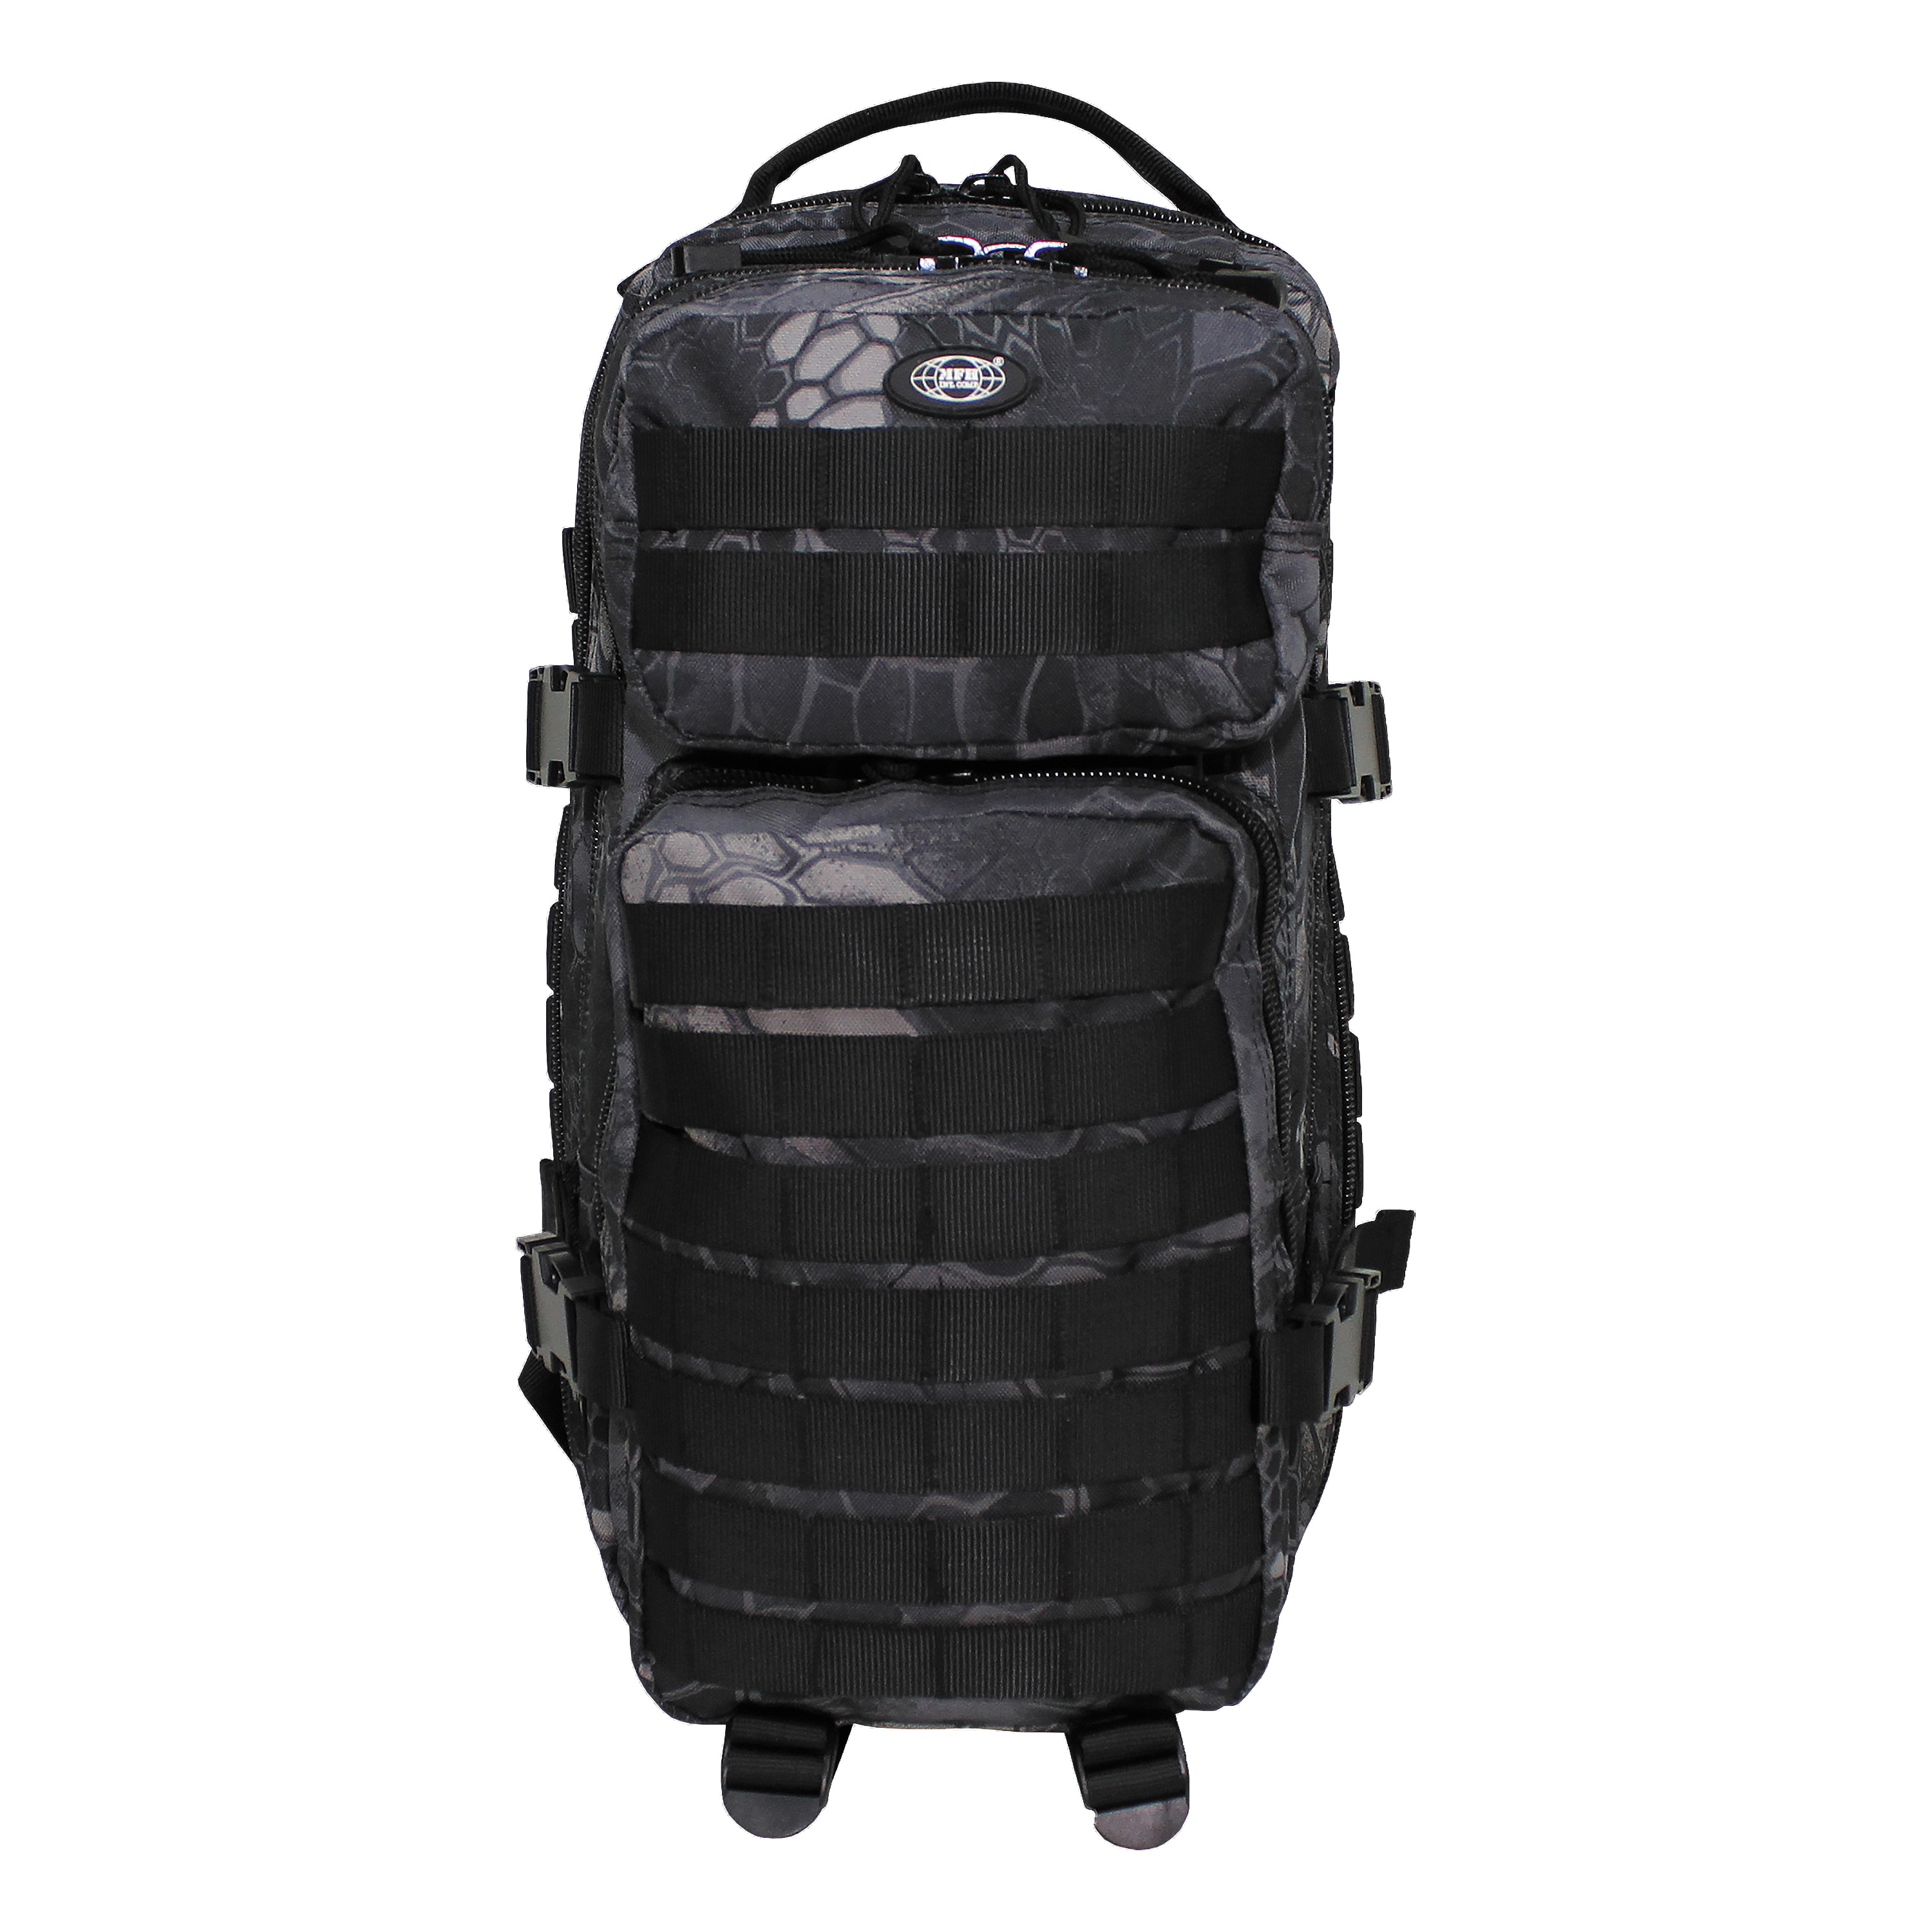 US Rucksack Assault I snake black 30 L